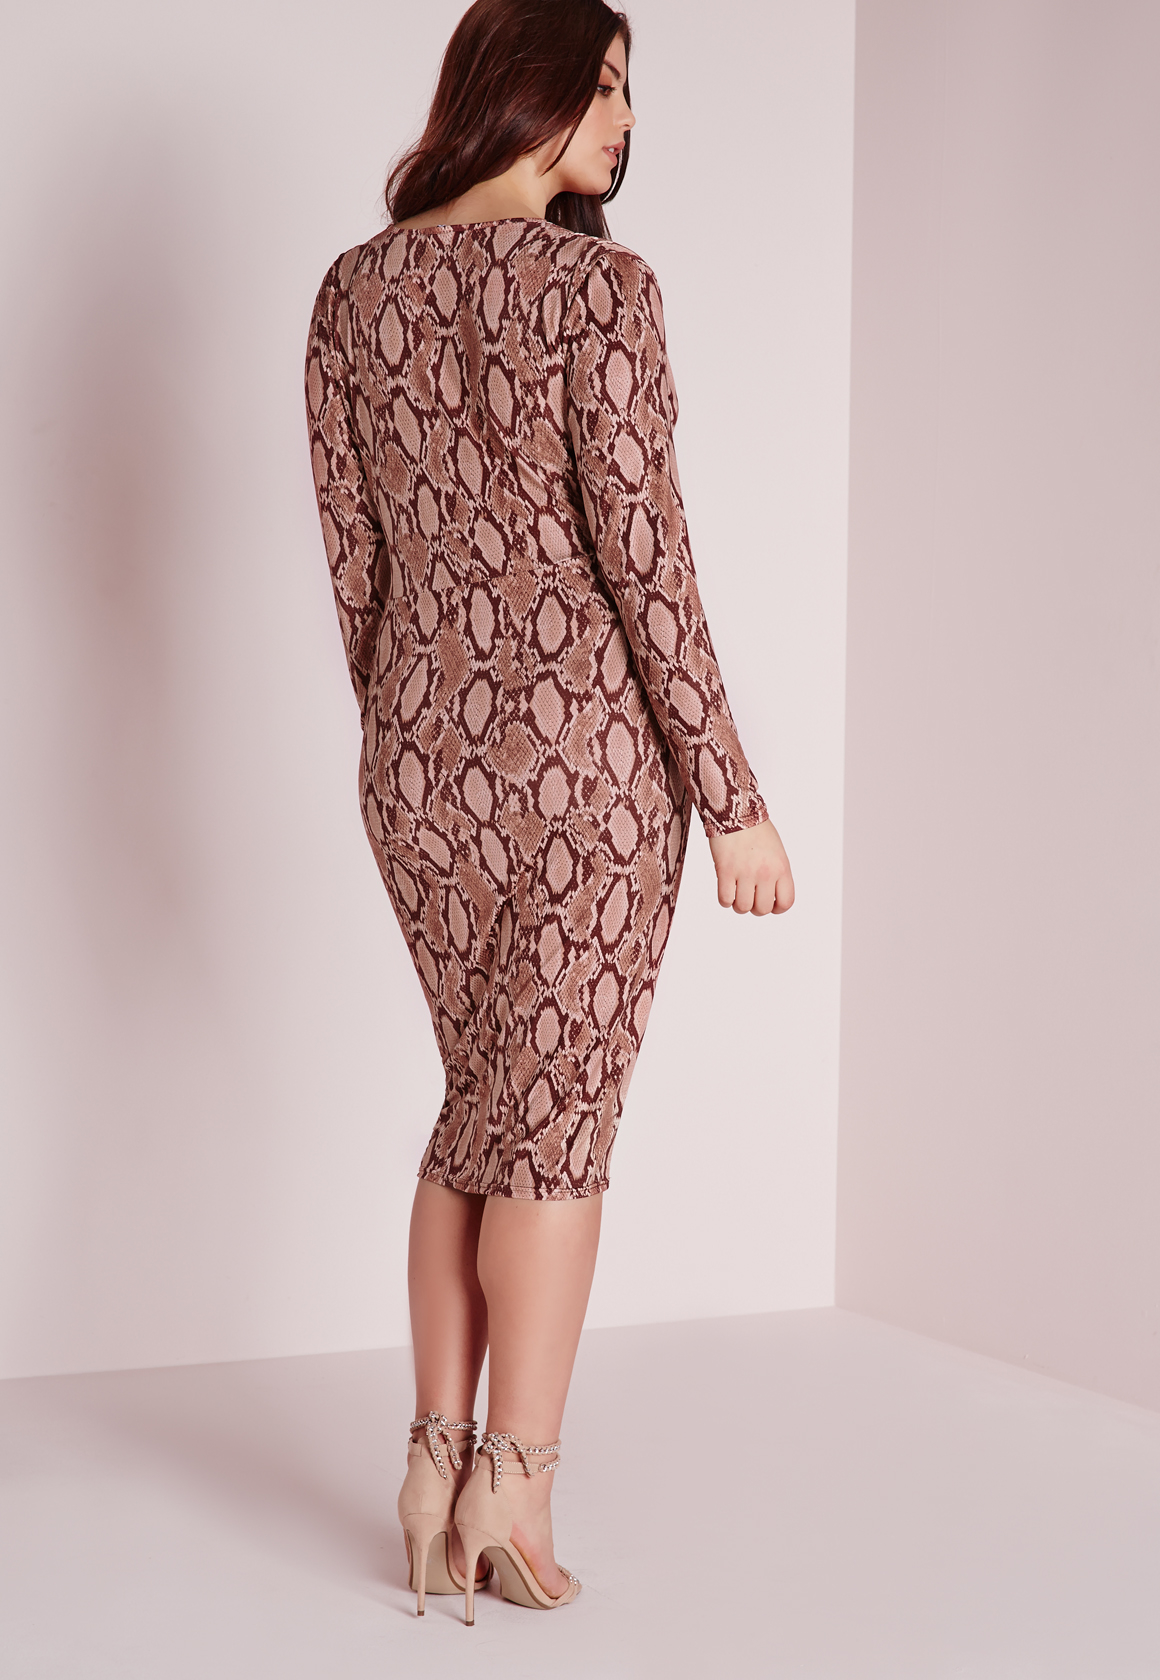 Lyst - Missguided Plus Size Snake Print Plunge Dress Pink in Pink